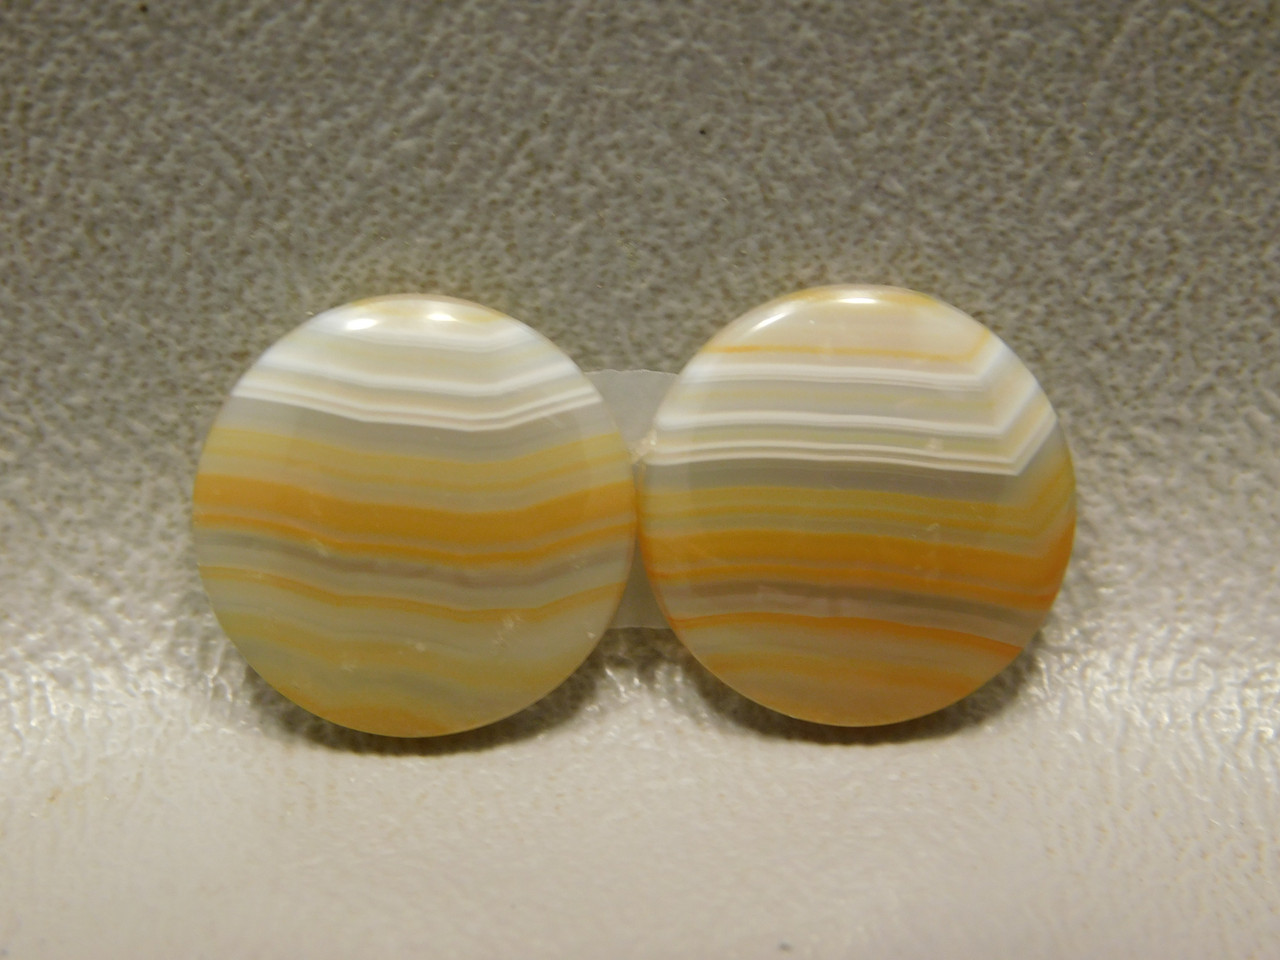 Brazilian Piranha Agate Matched Pair Cabochons Rounds 15 mm #8